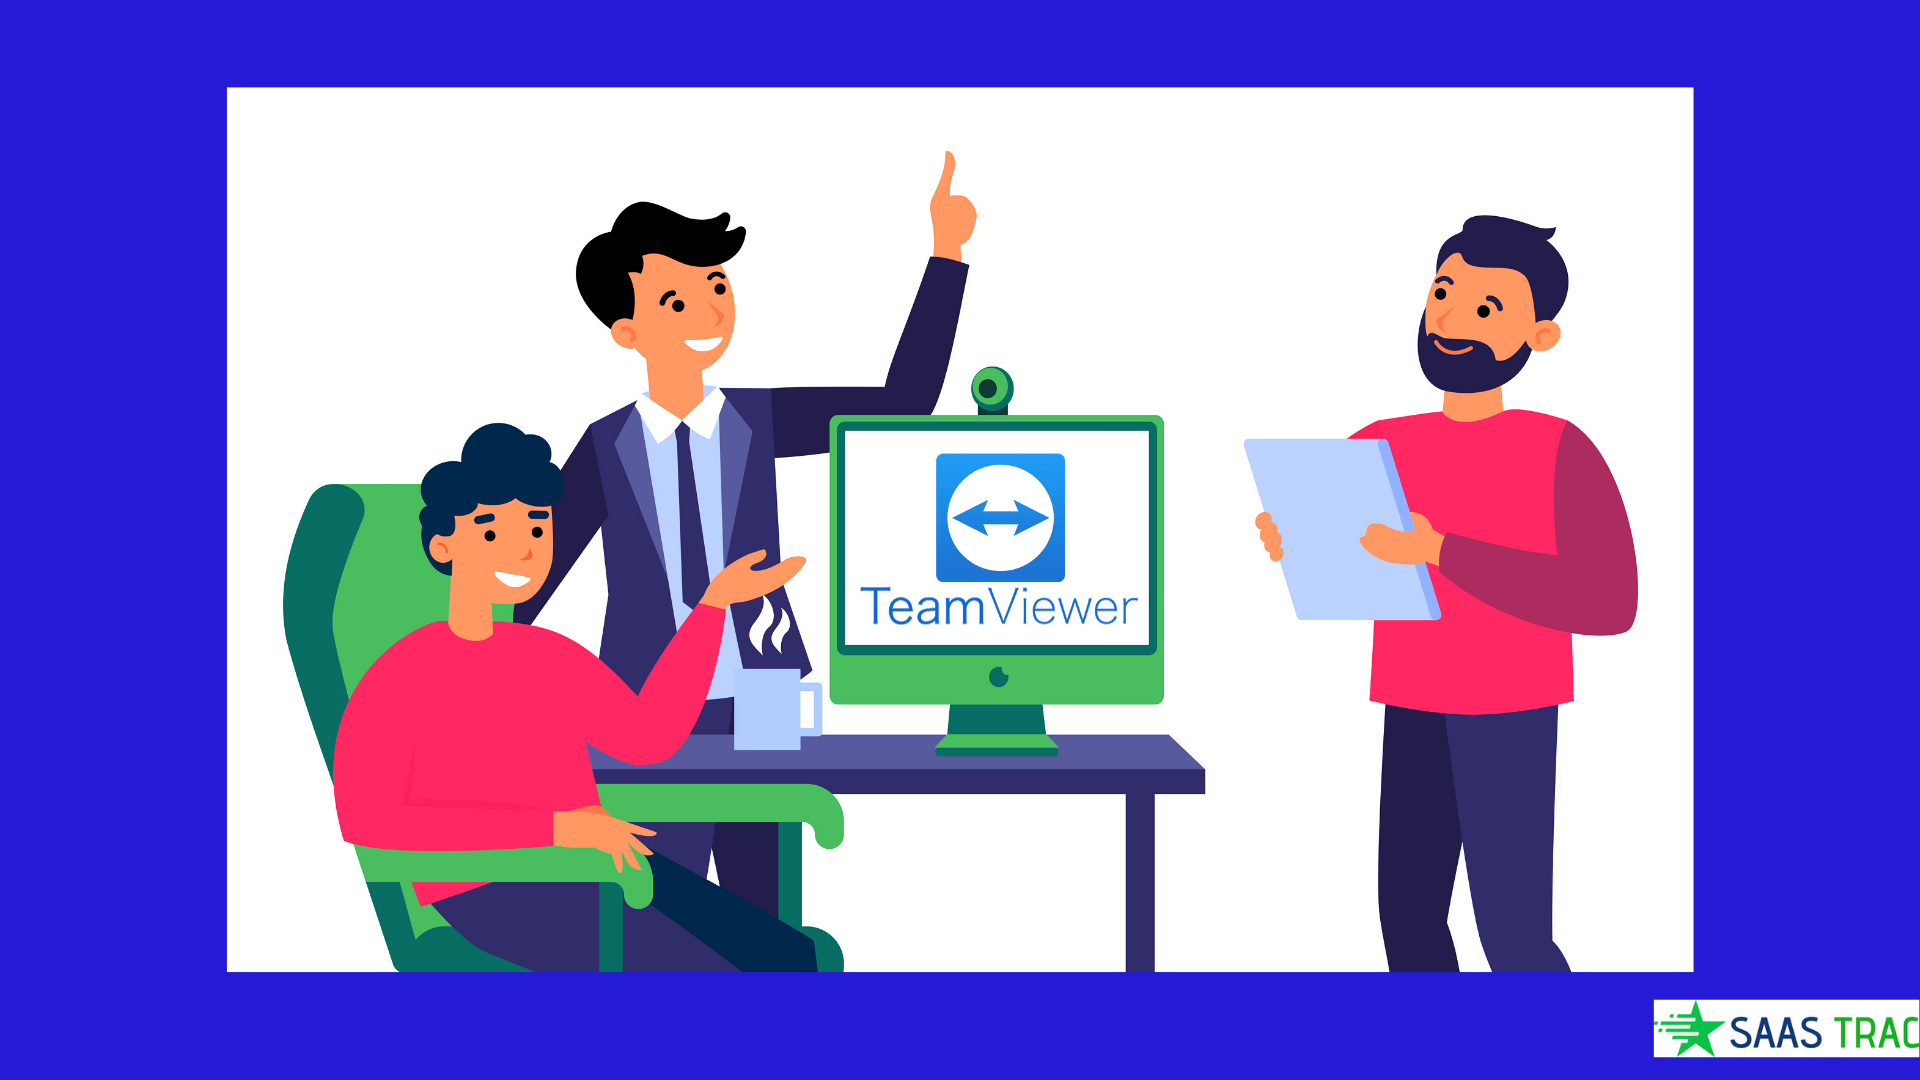 TeamViewer-Review-Know-how-to-Communicate-Safely-and-get-rid-of-Security-Breaches